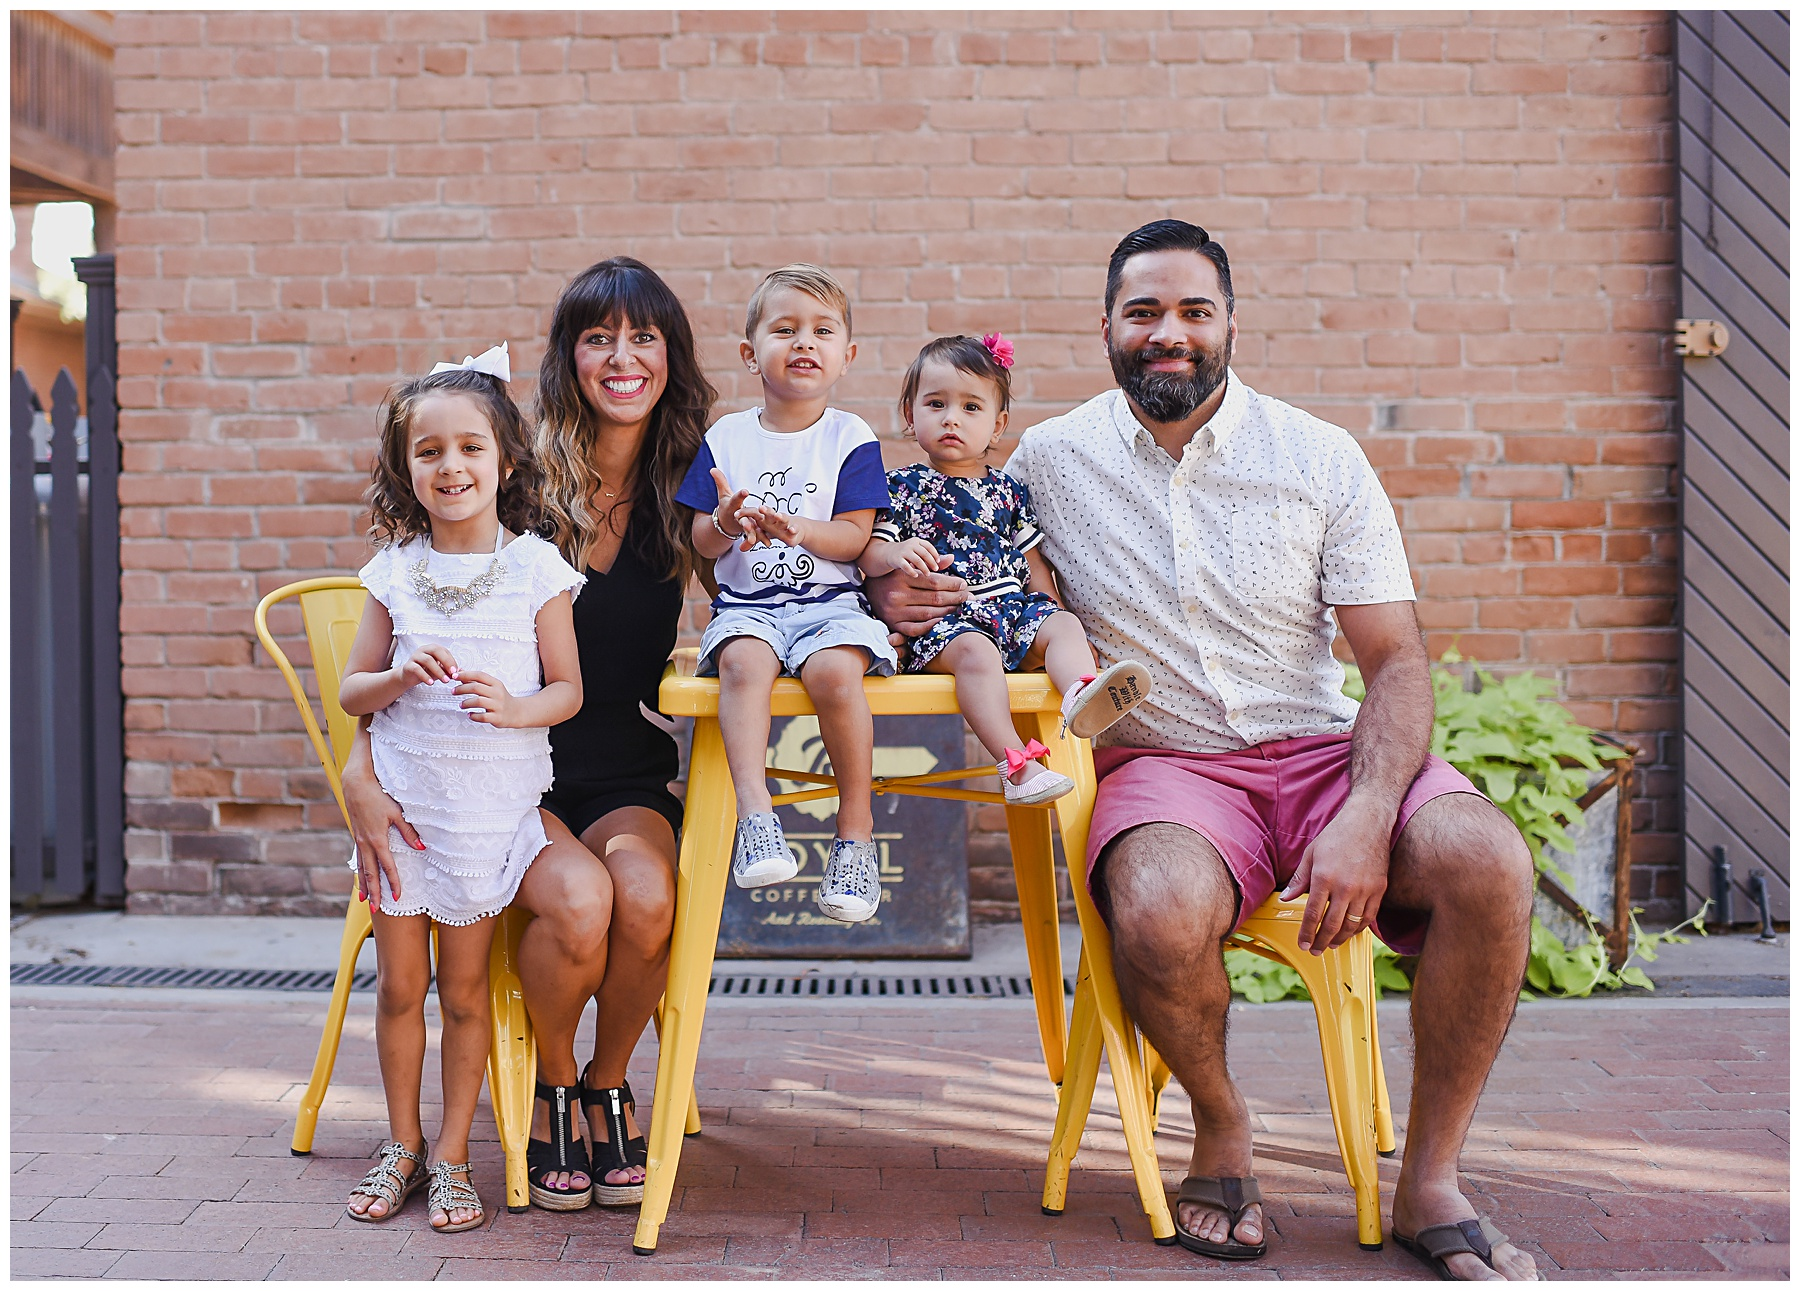 Urban family portrait session in Phoenix AZ | SweetLife Photography